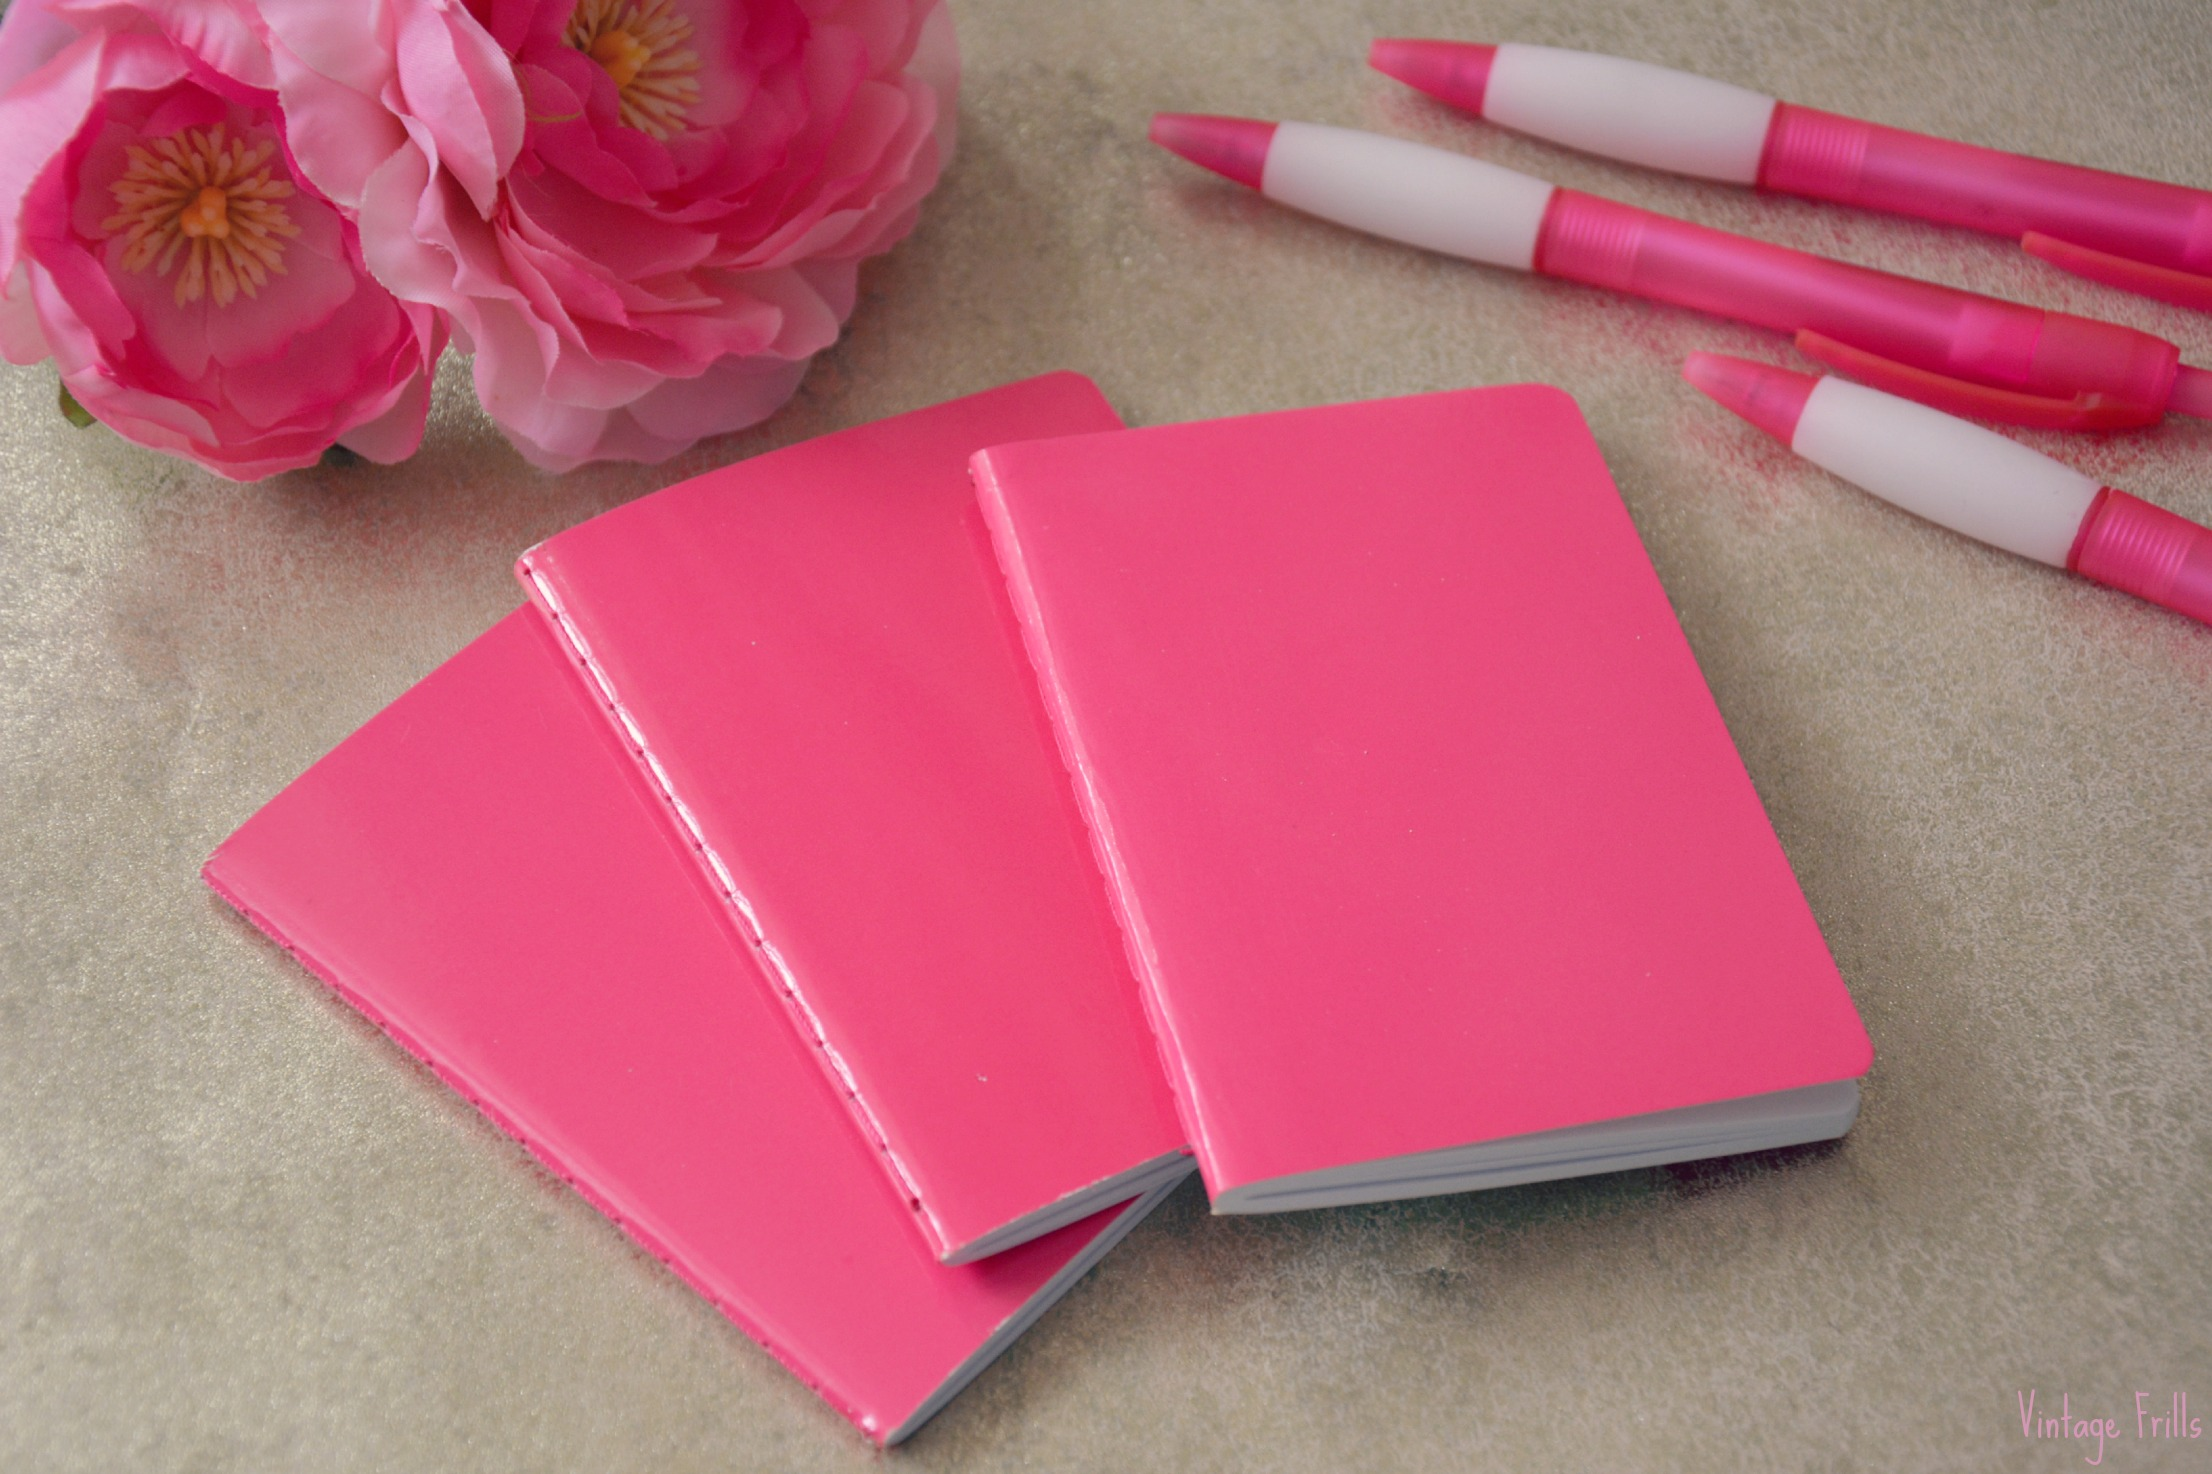 Wilkos Pink Pens and Notebooks